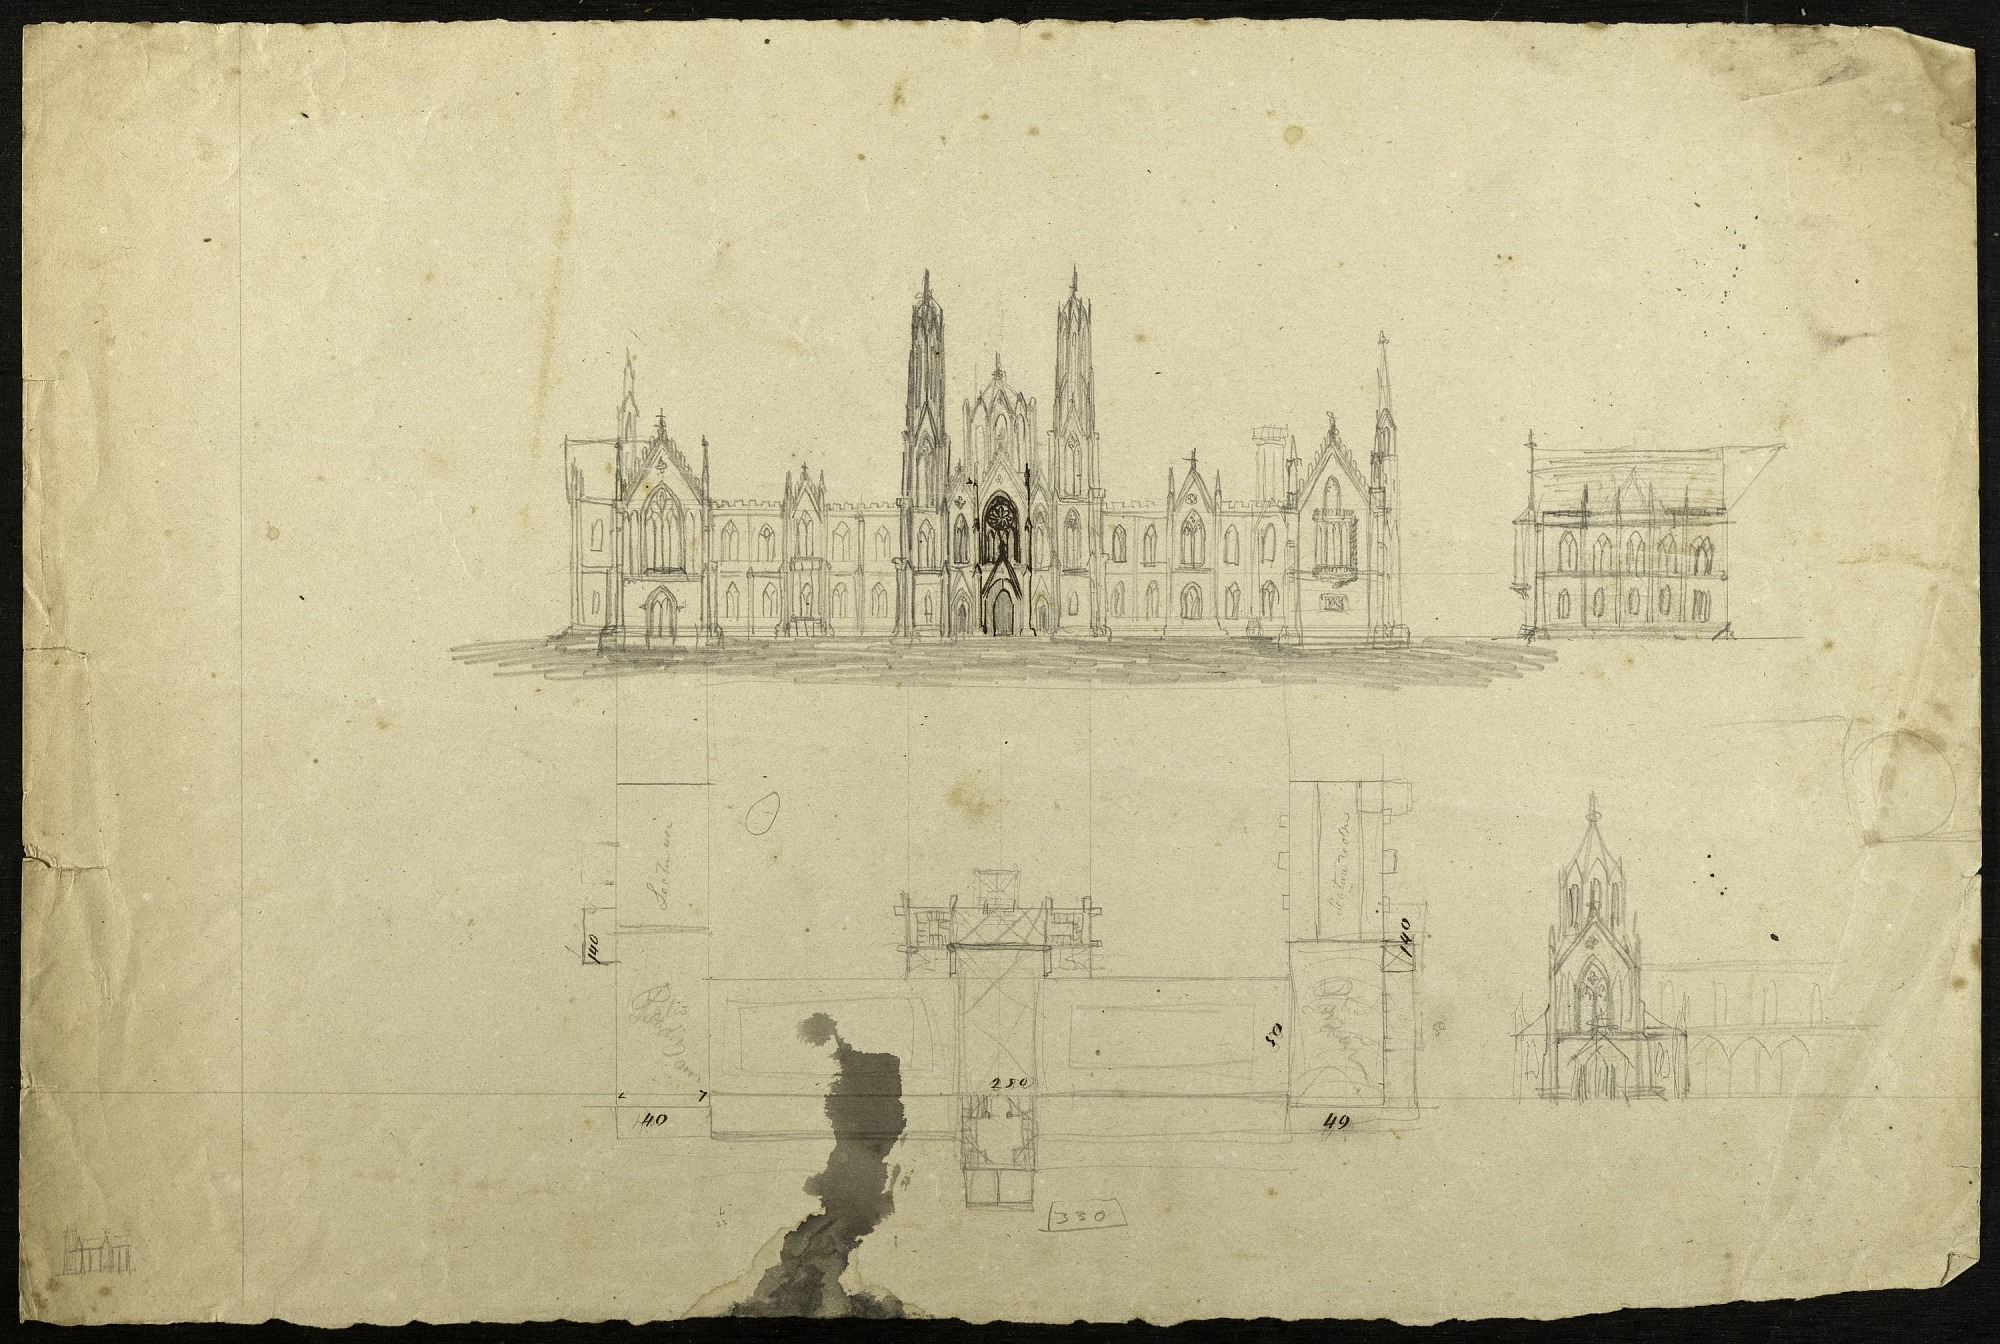 images for Earliest Known Sketches of the Smithsonian Institution Building